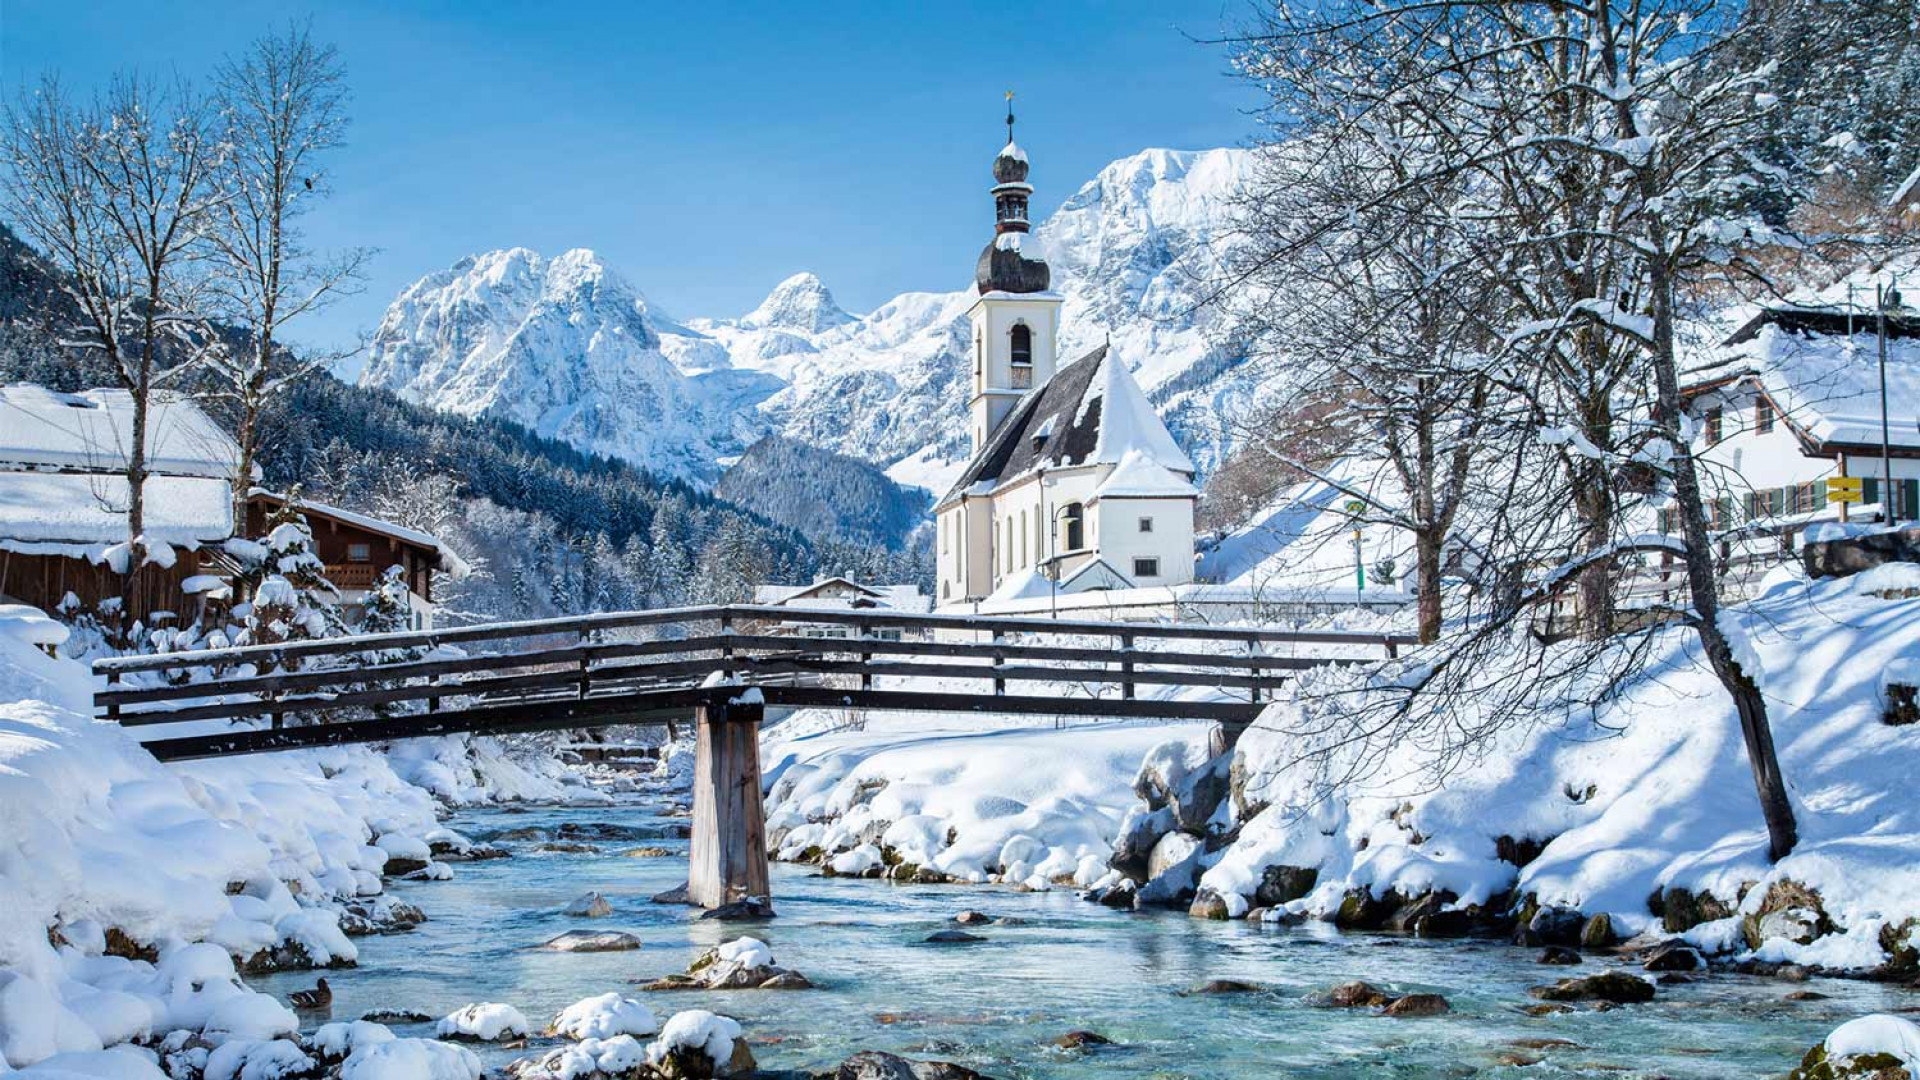 Skiing holidays in Bavaria